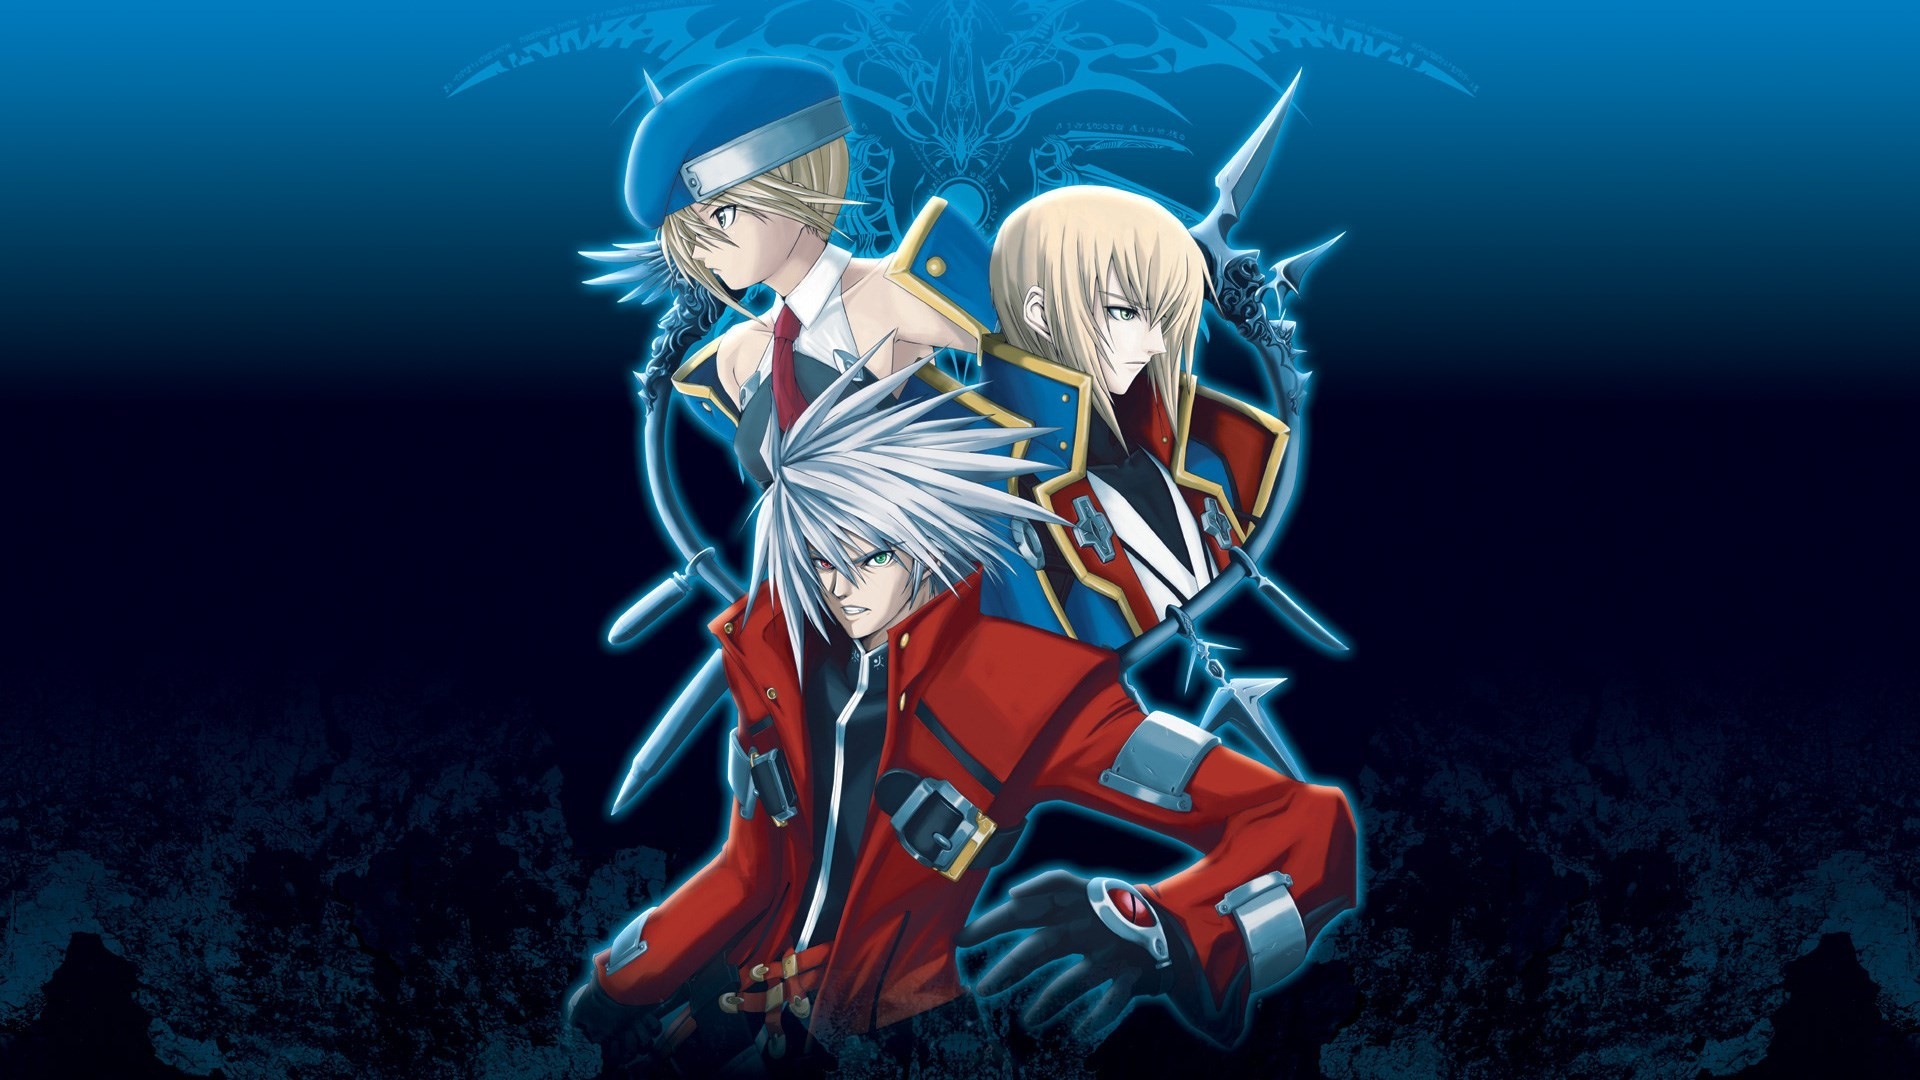 blazblue calamity trigger macbook wallpapers hd (Winifred Grant 1920×1080)